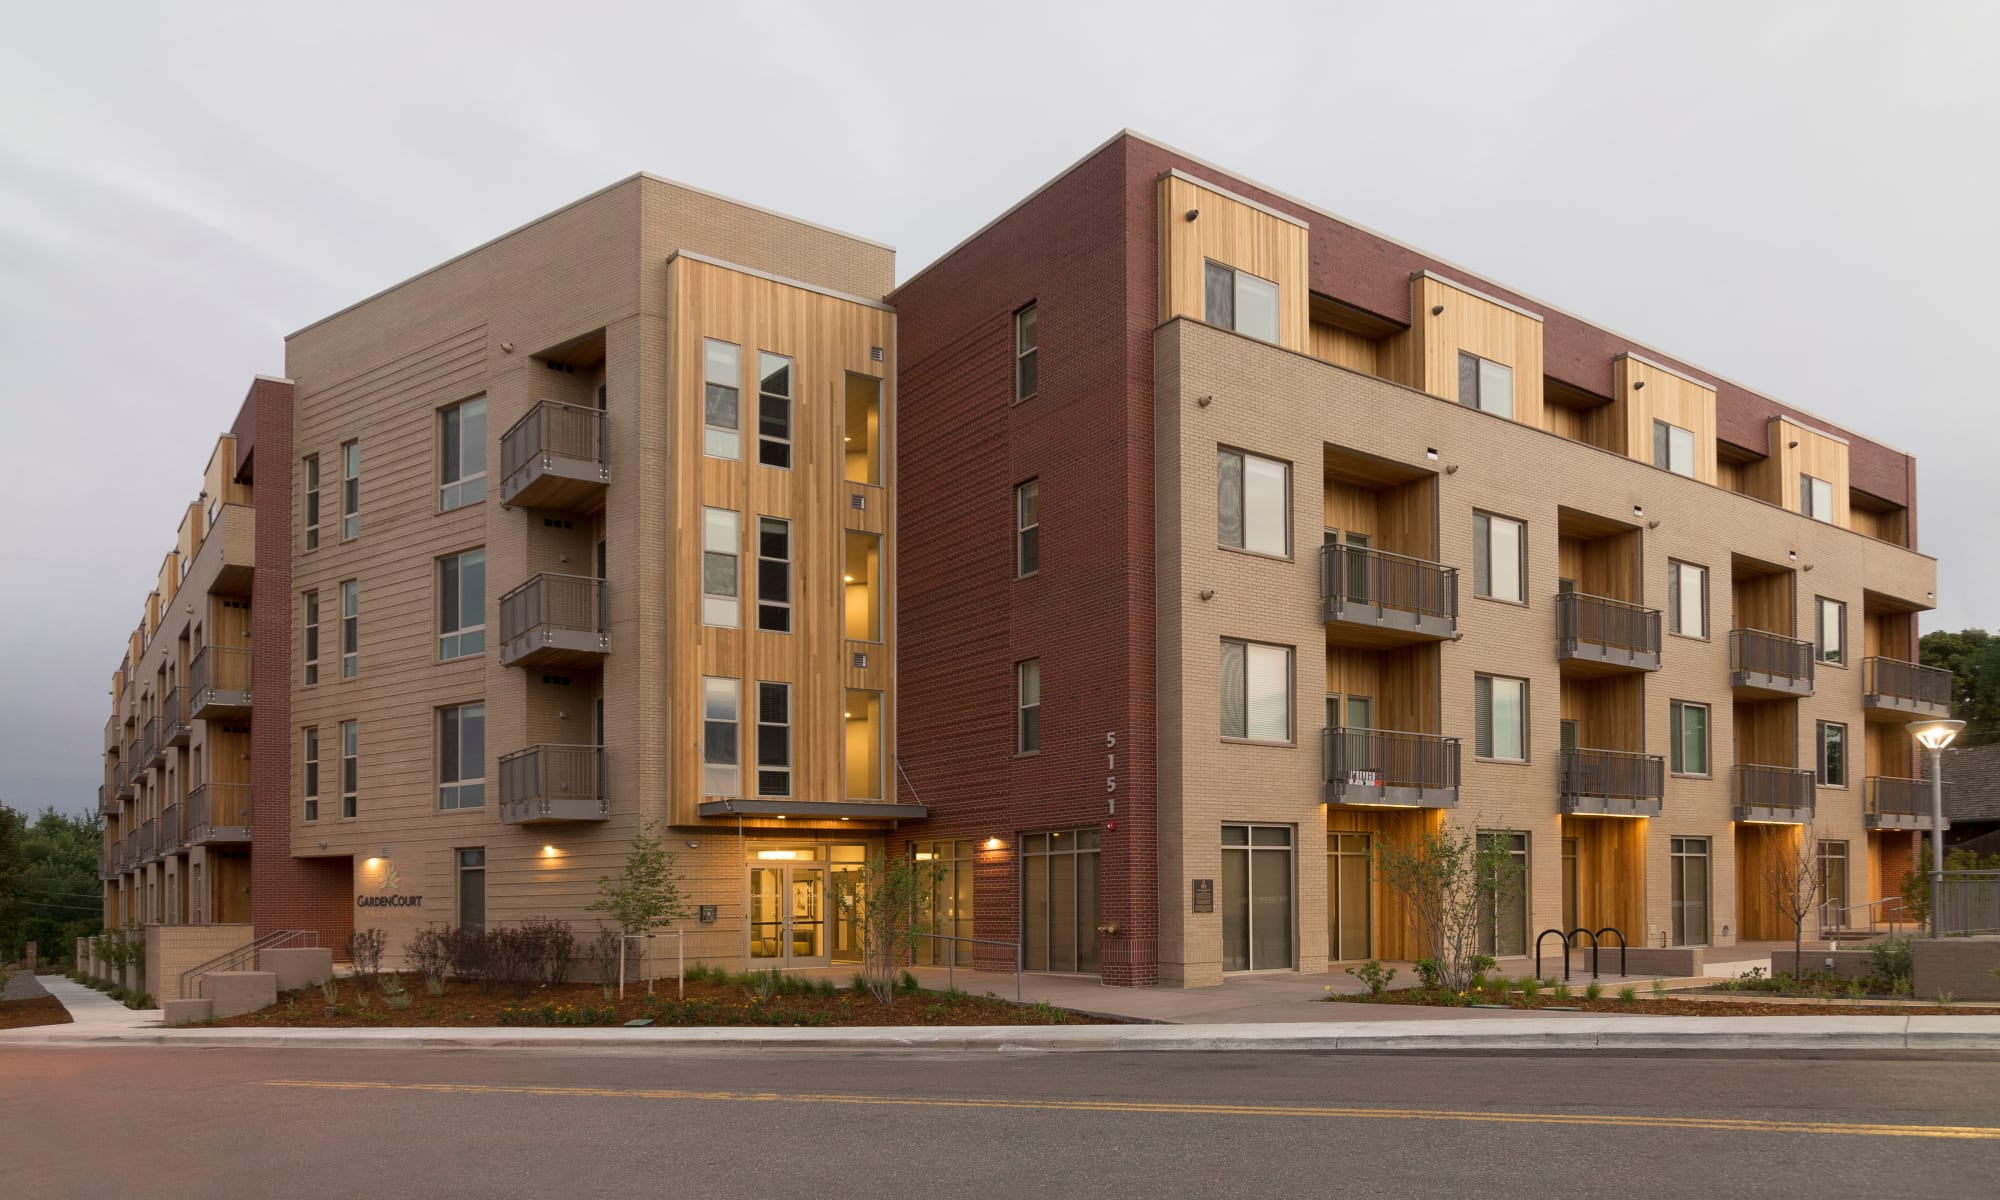 Beautiful shot of the building at Garden Court Apartments Yale Station in Denver, Colorado